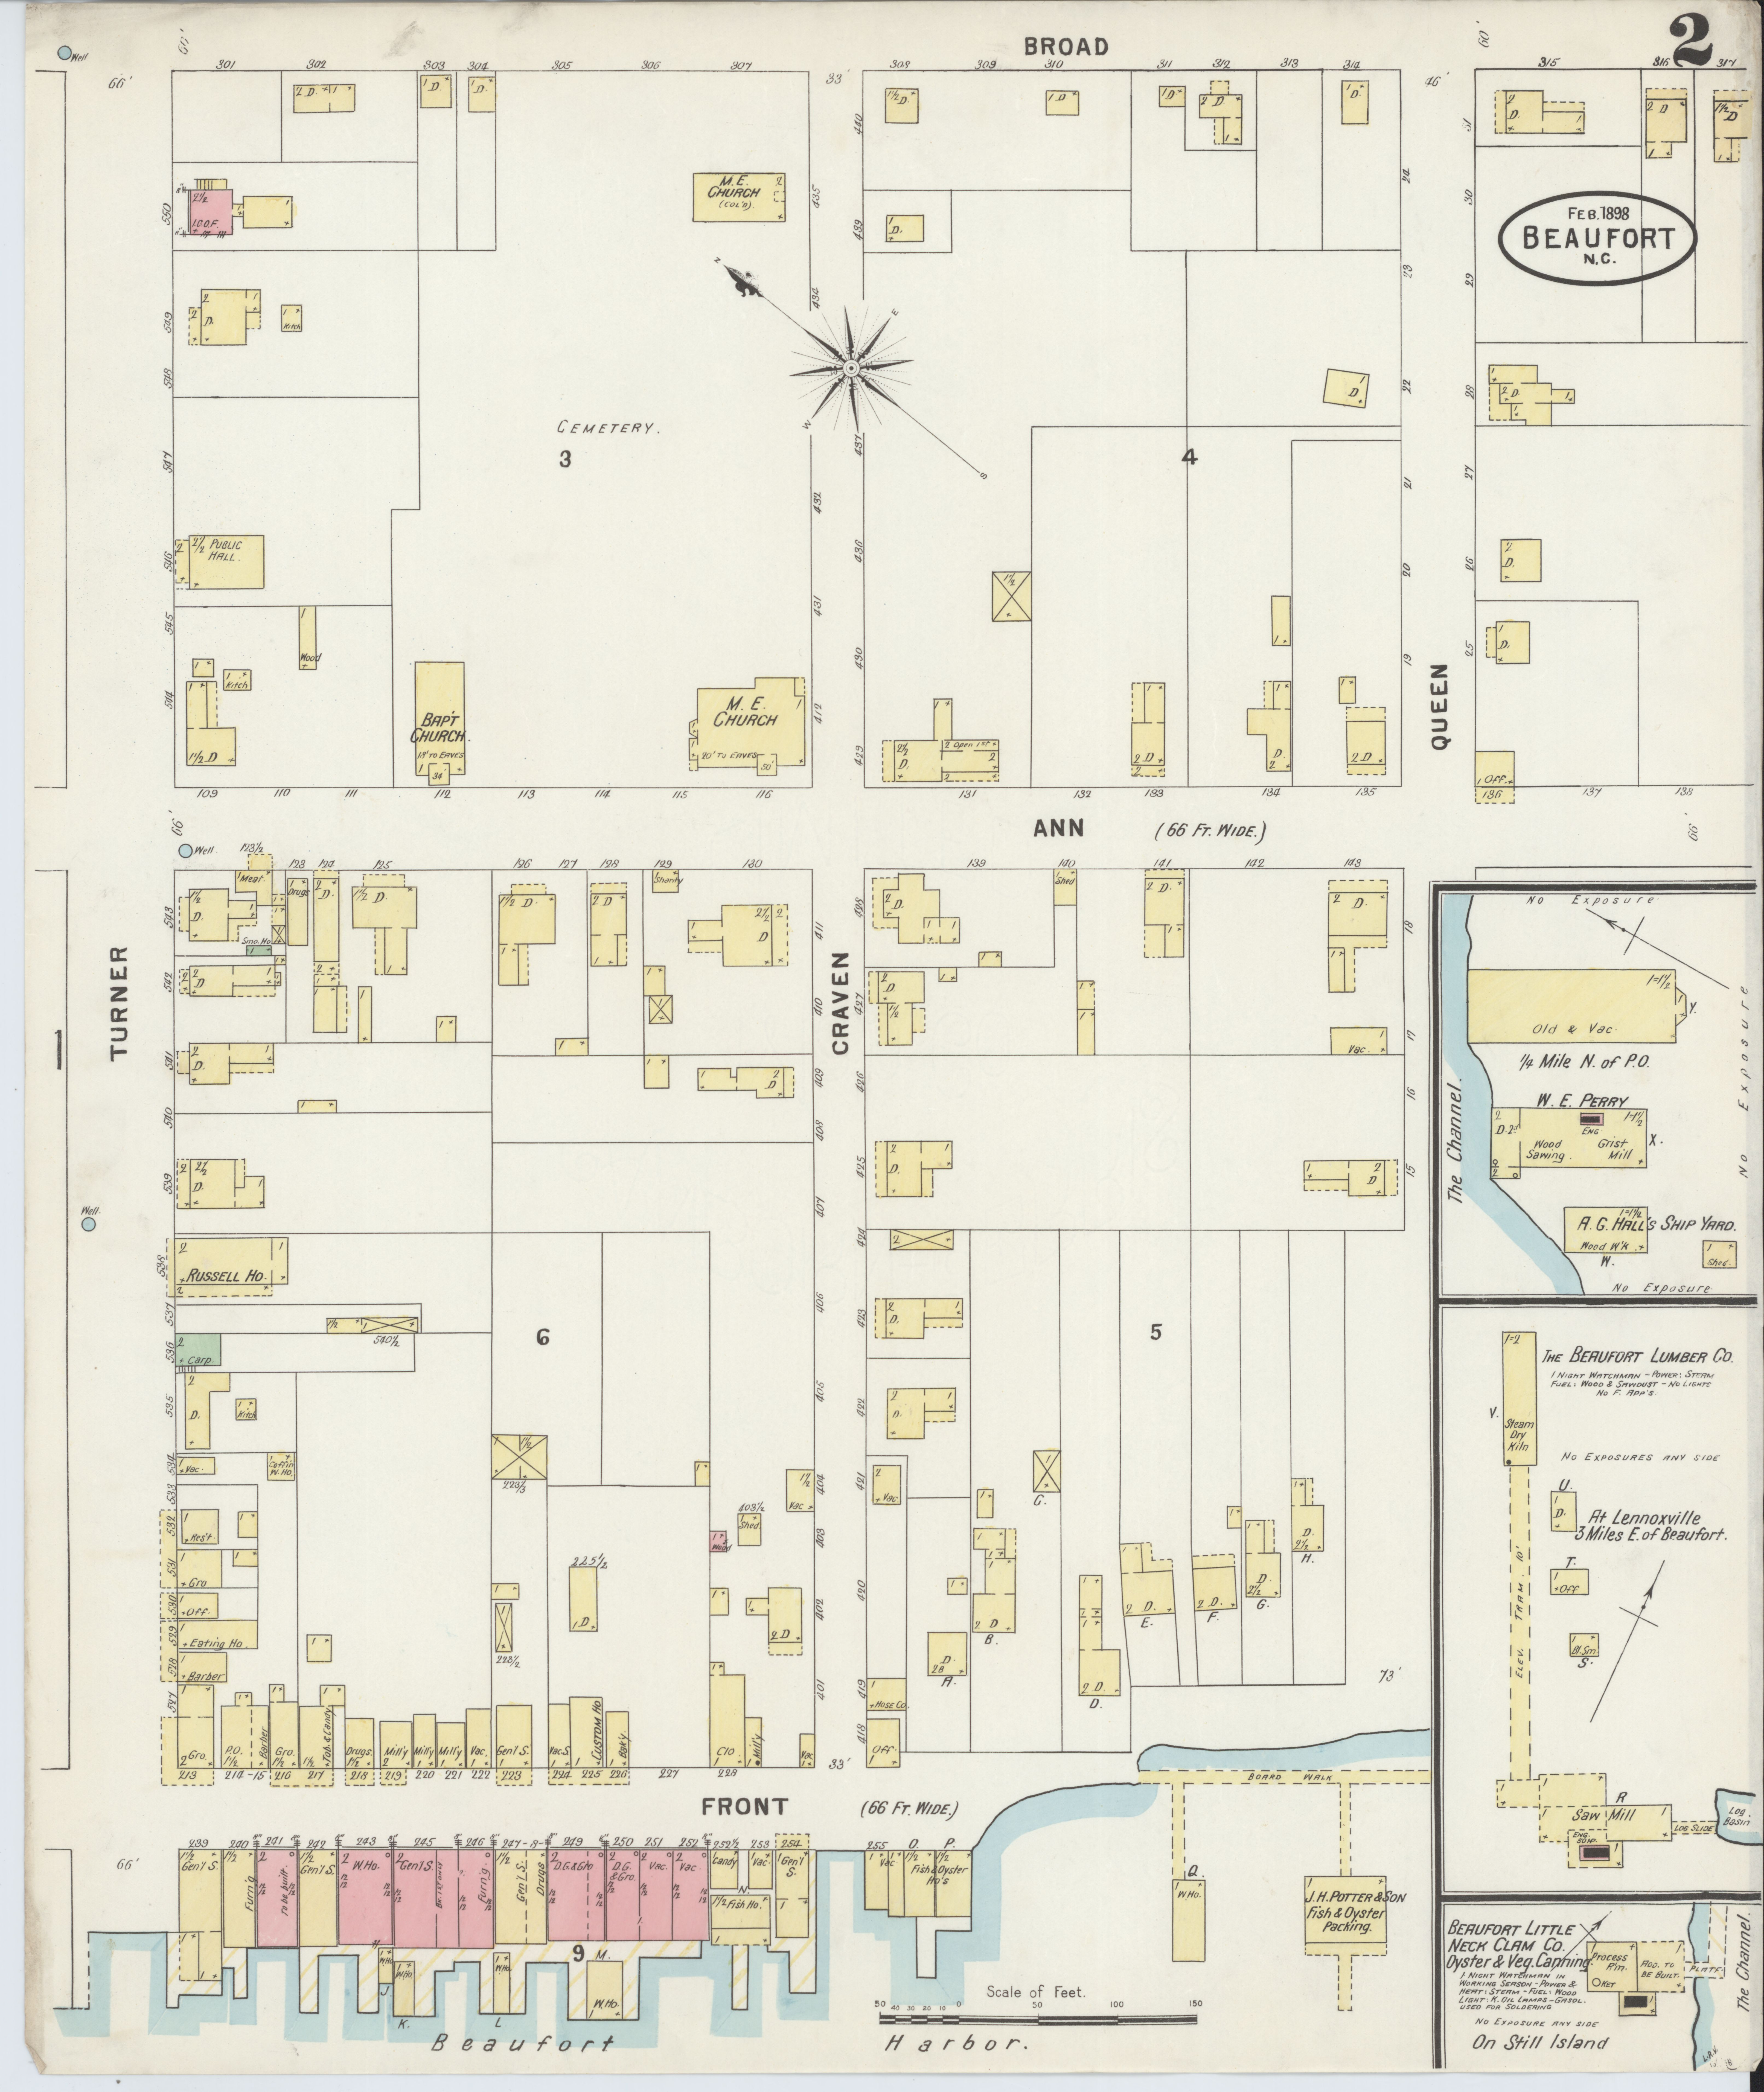 Carteret County Nc Map.File Sanborn Fire Insurance Map From Beaufort Carteret County